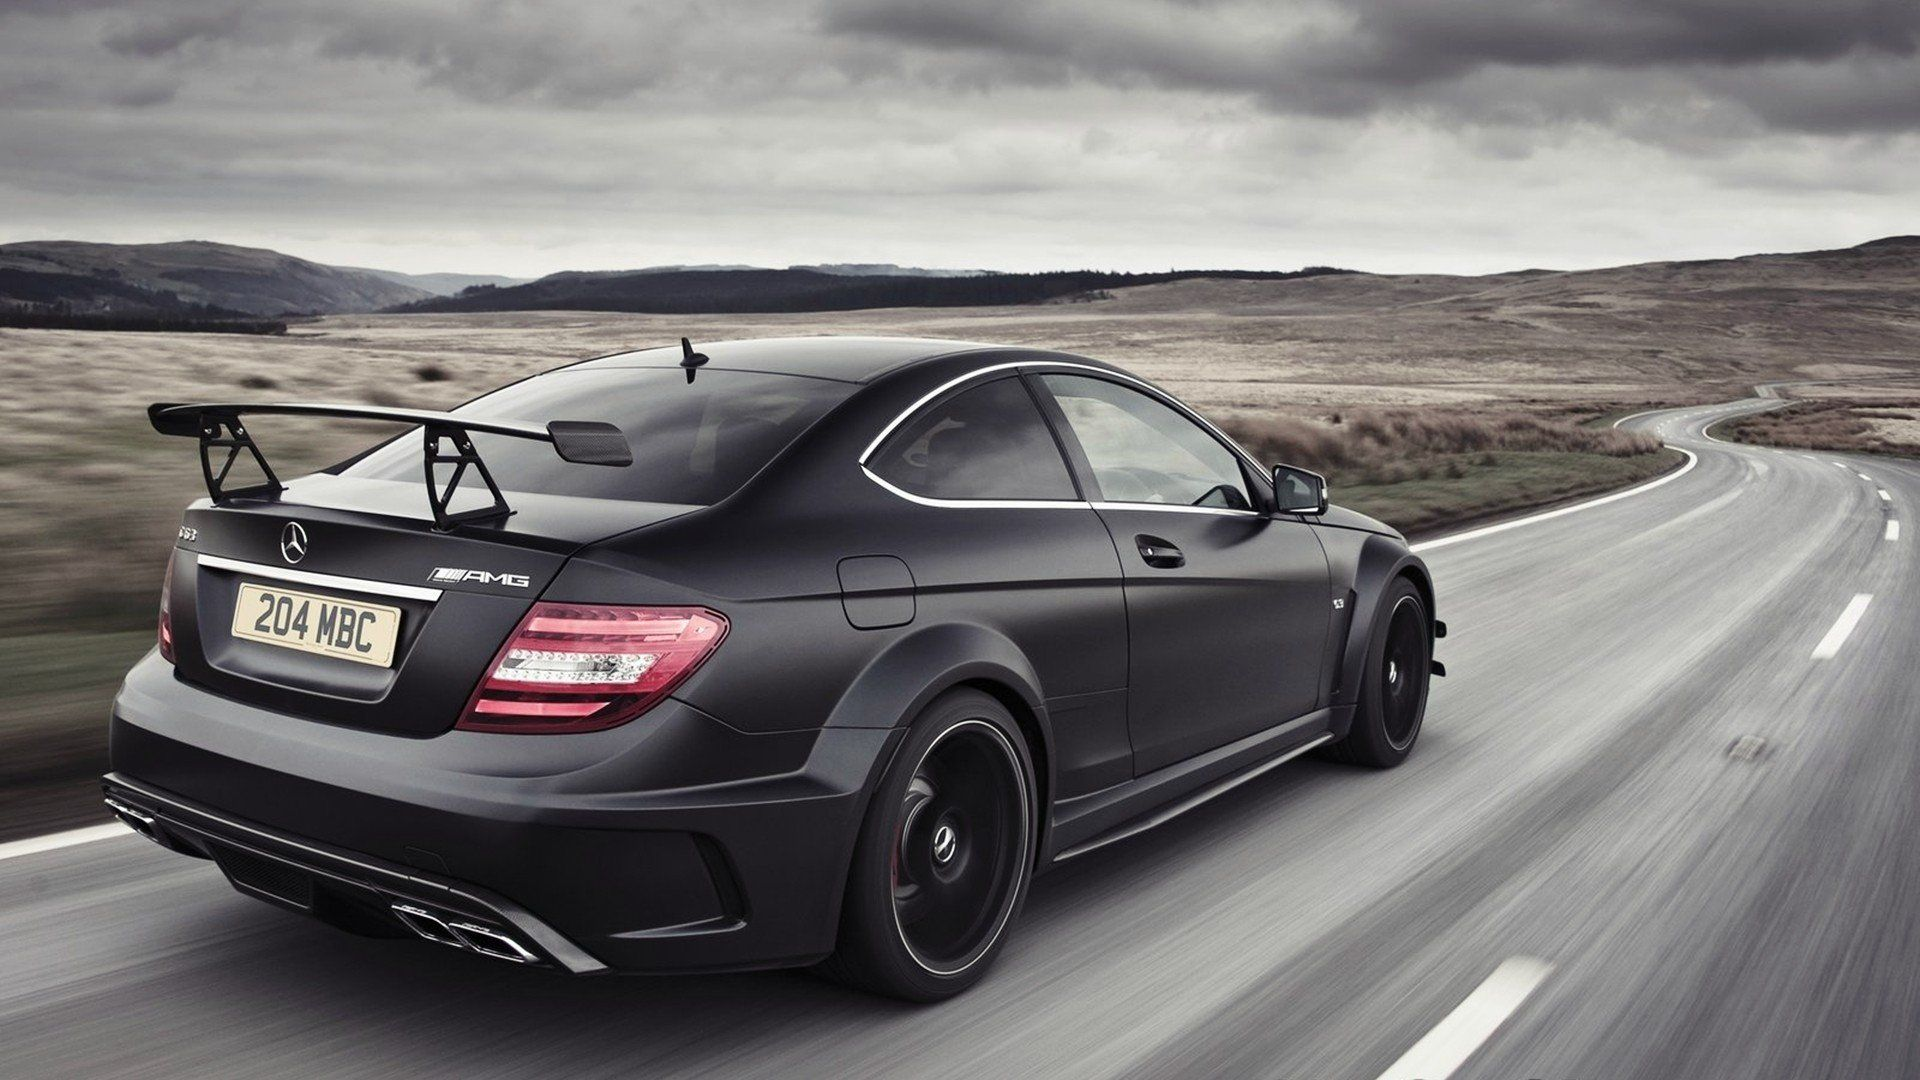 Pin by thepaperwall on cars trucks pinterest mercedes benz c63 amg mercedes benz and cars